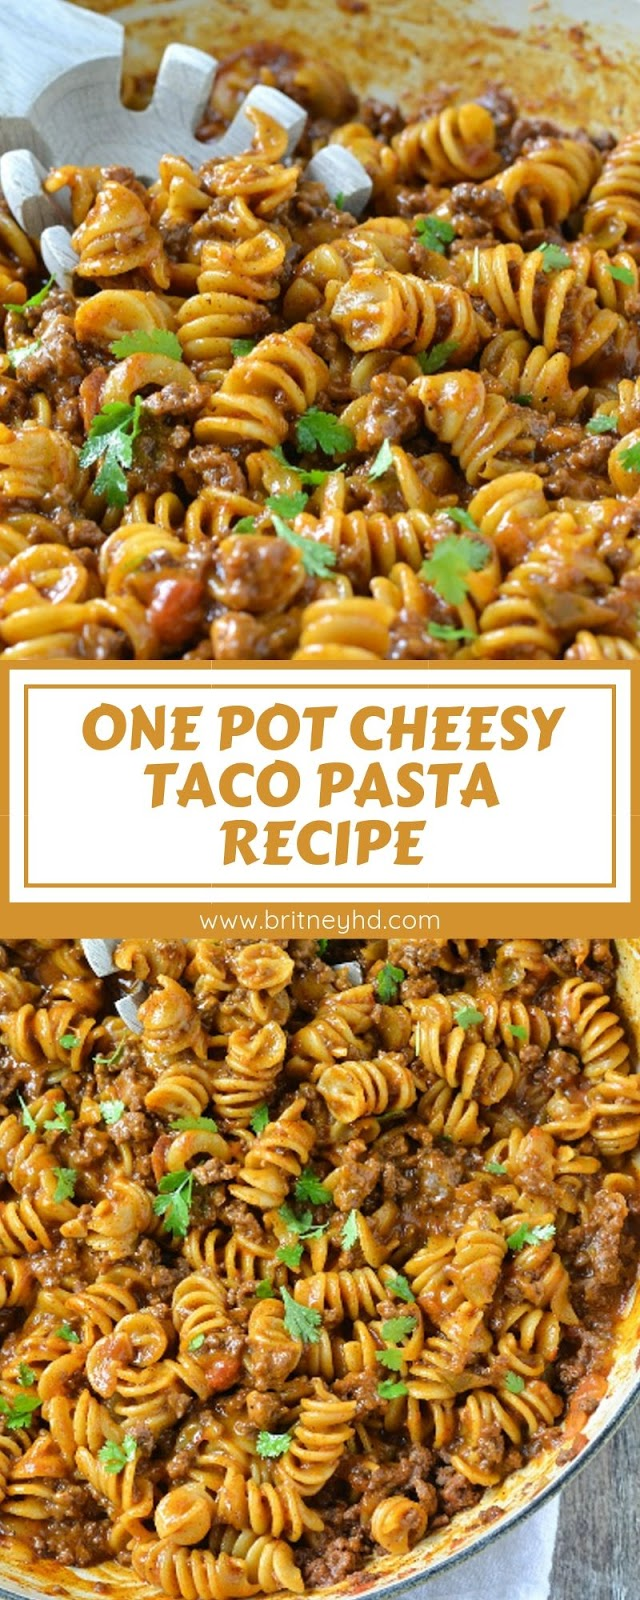 ONE POT CHEESY TACO PASTA RECIPE